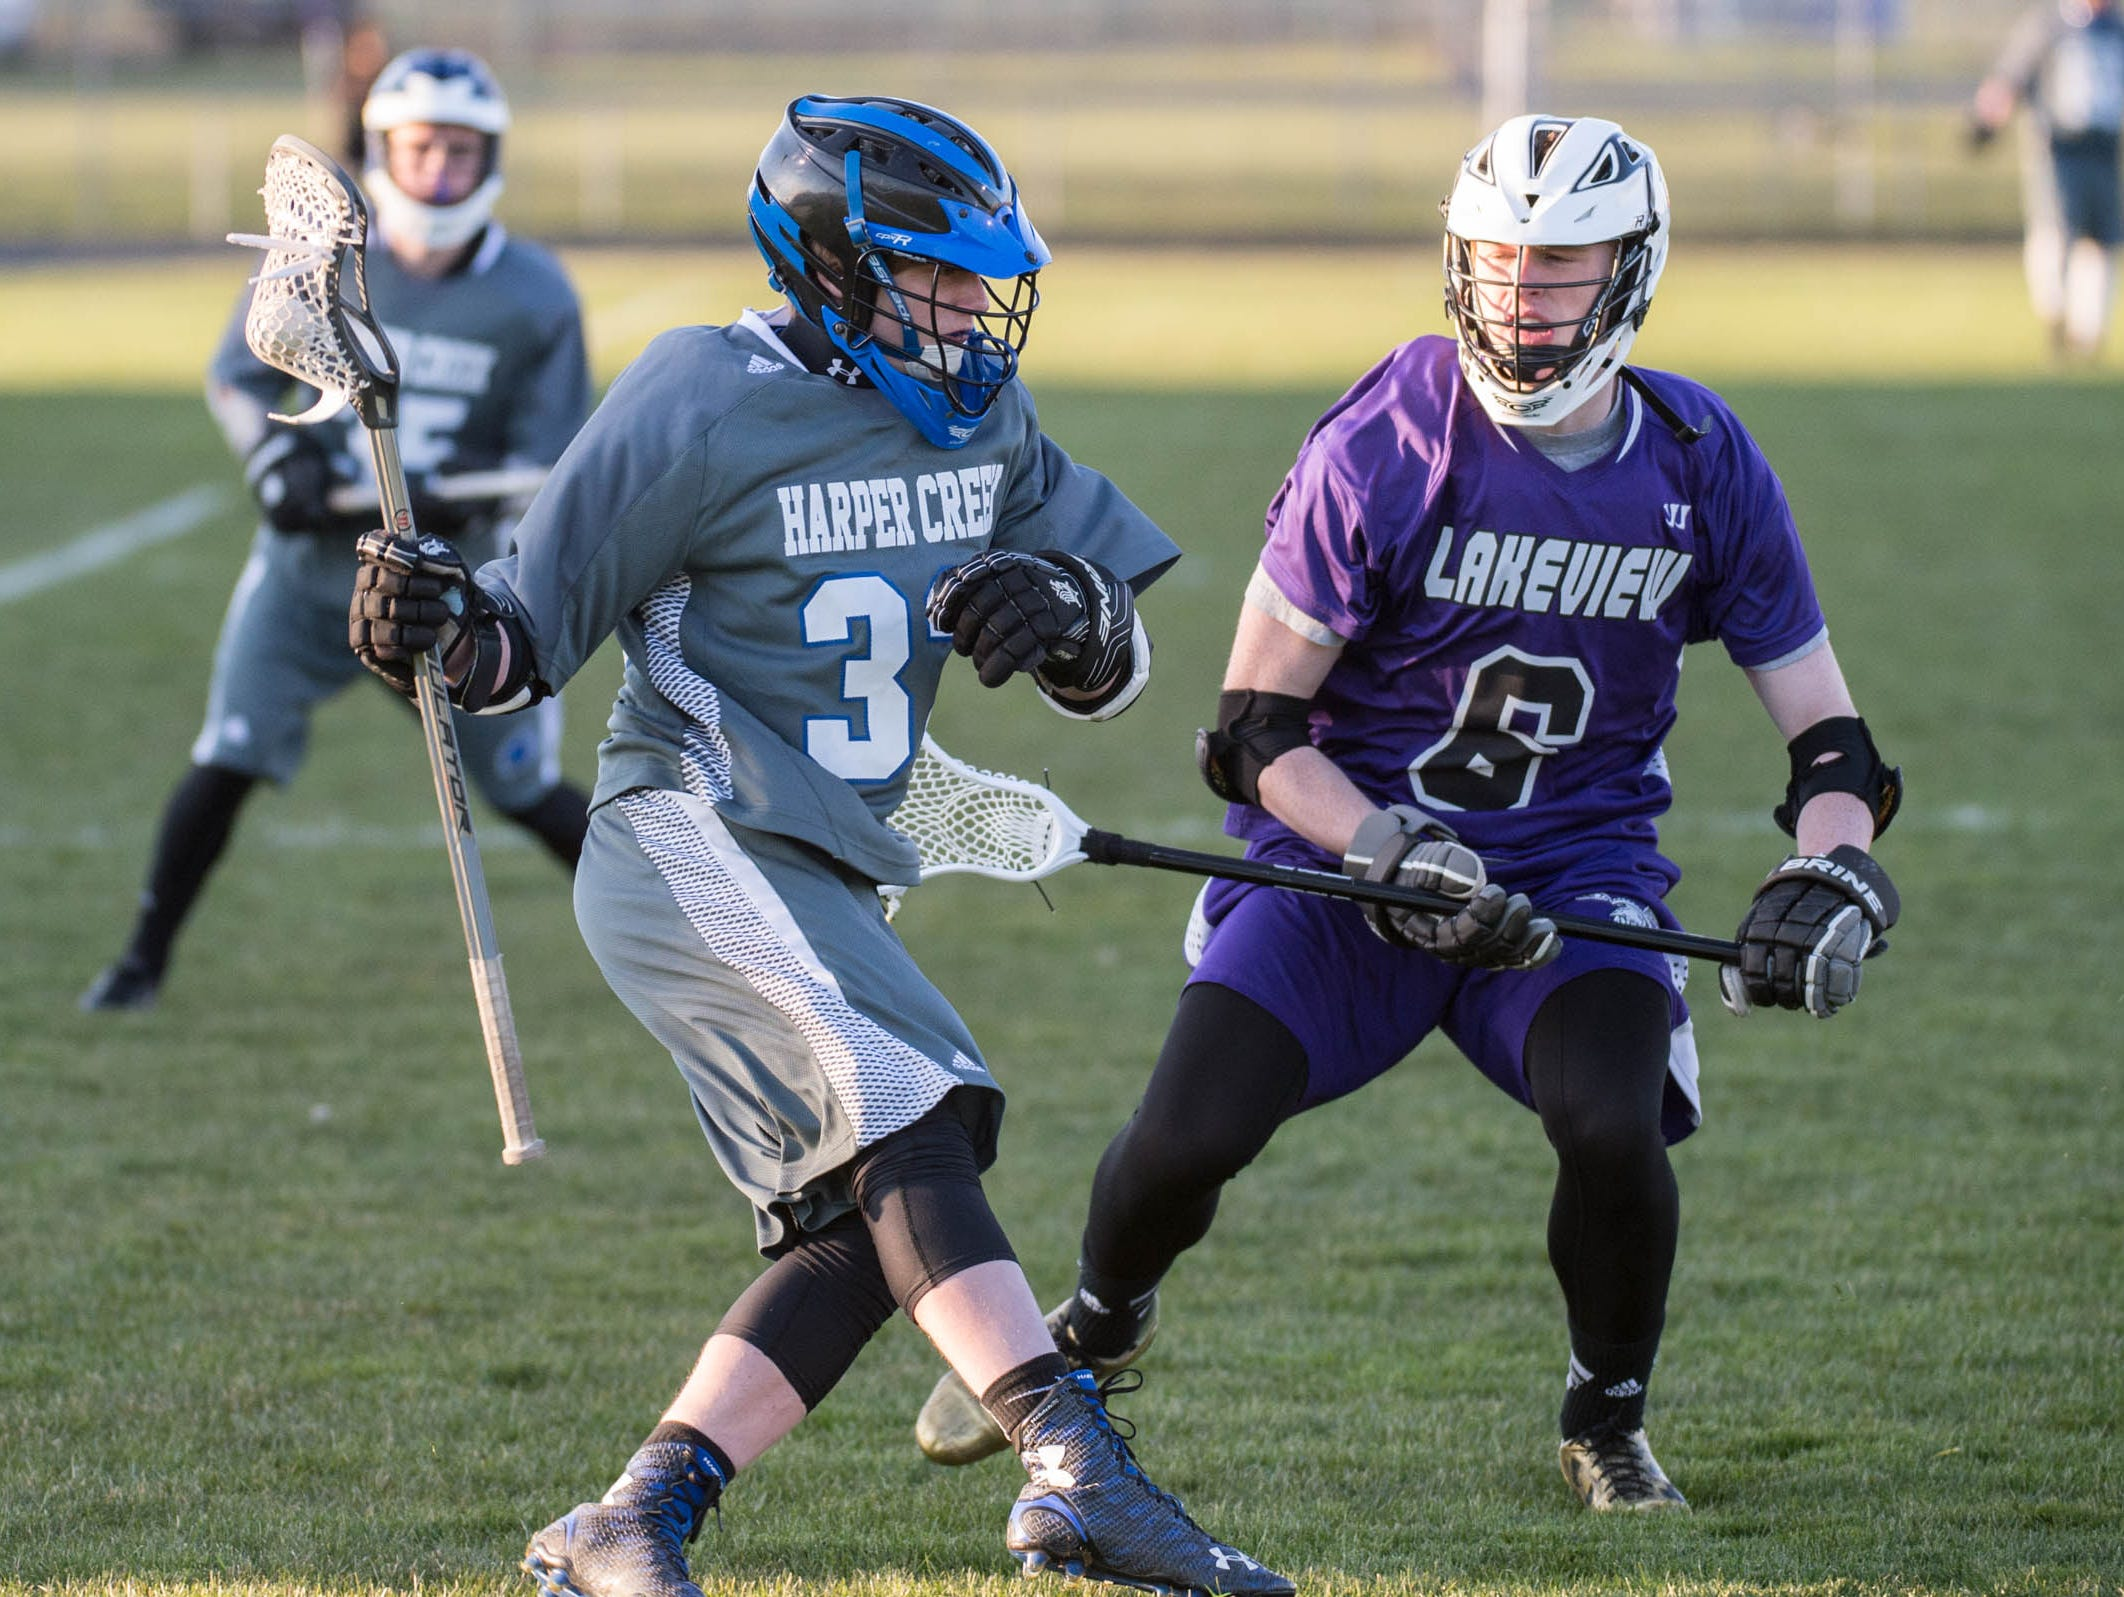 Harper Creek's Noah Bausenrman (32) and Lakeview's Cam Gillette (6) during action on Tuesday.